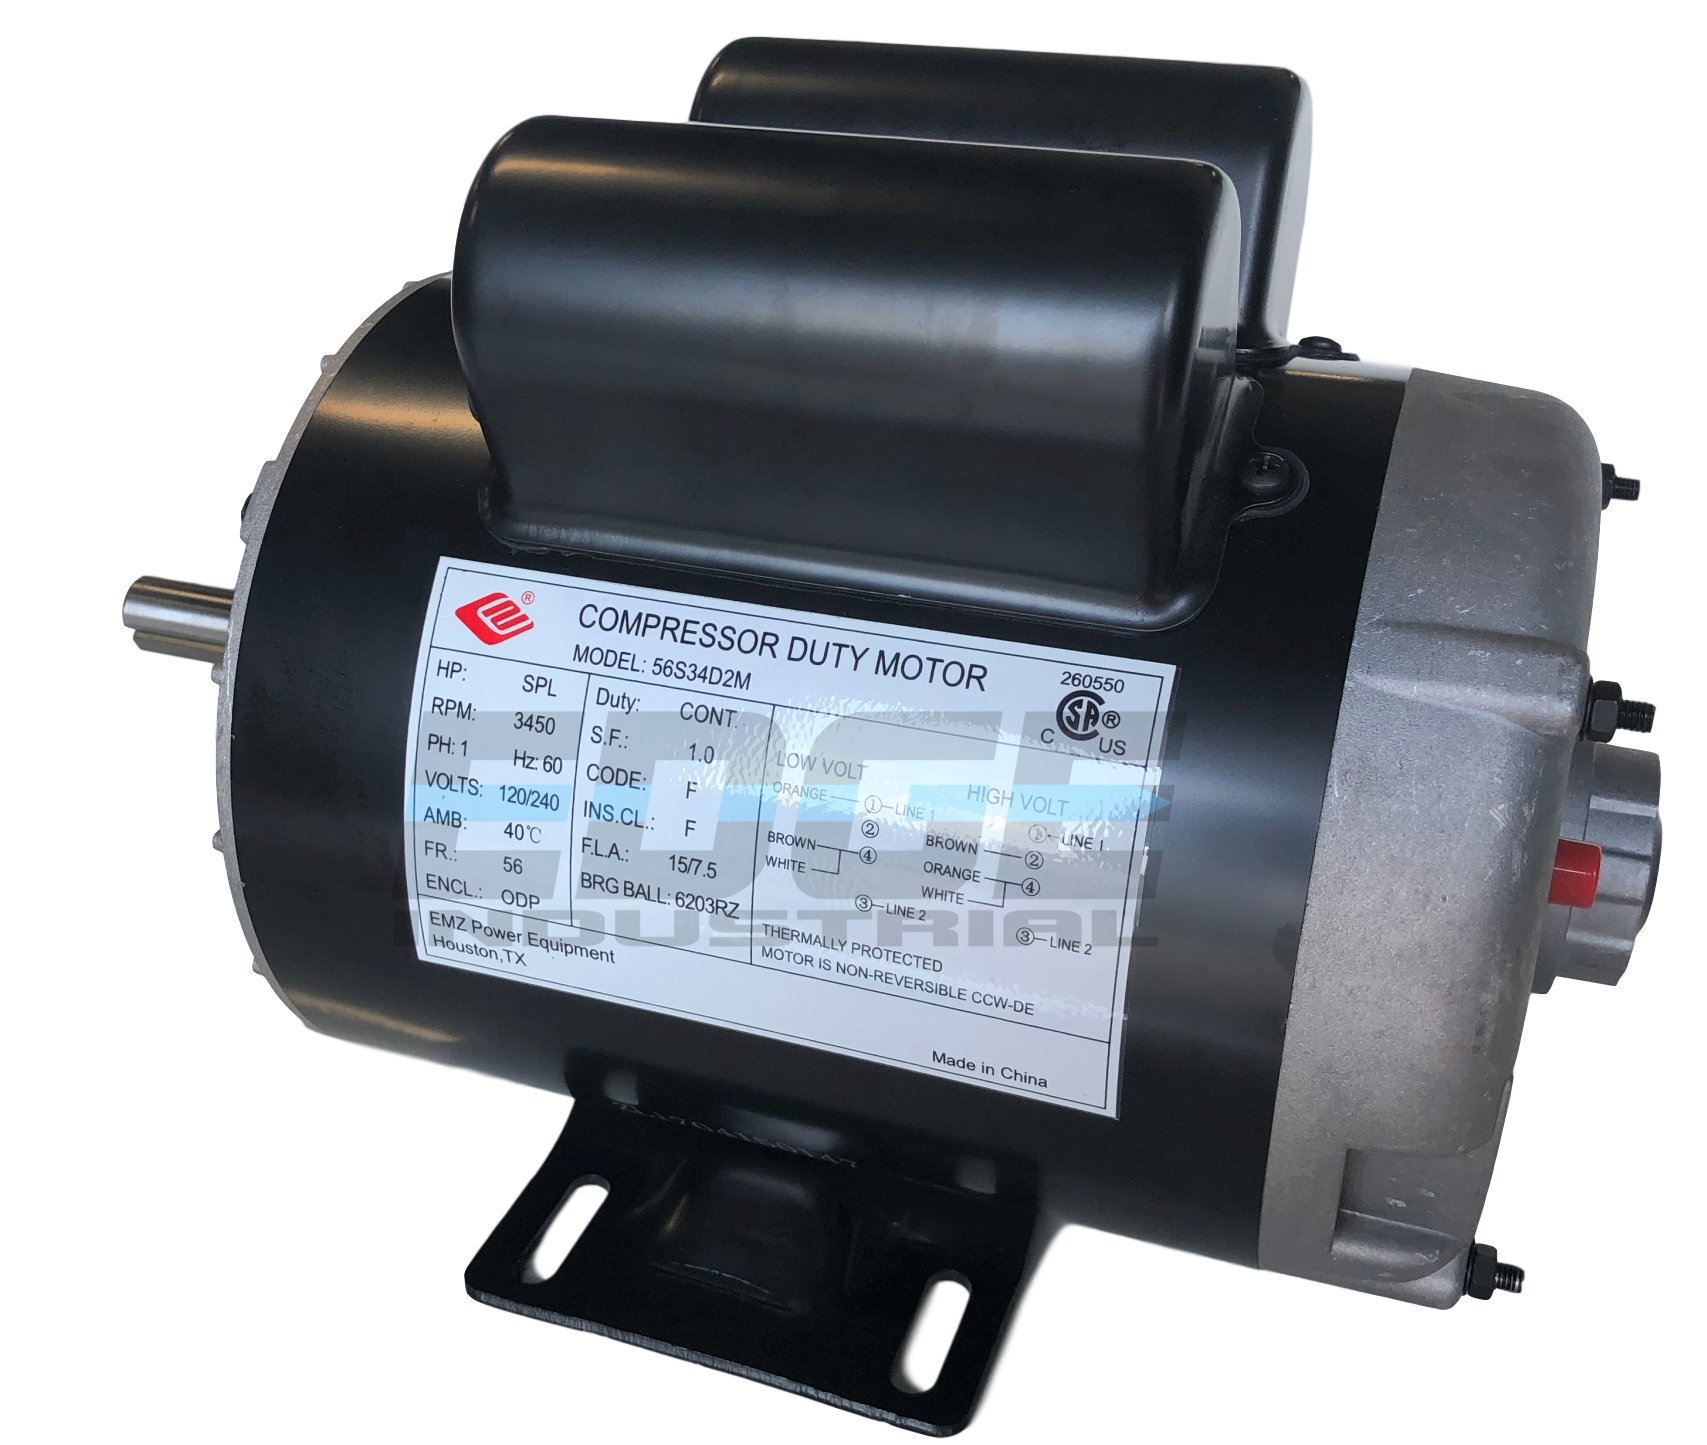 NEW 2 HP SPL Compressor Duty Electric Motor, 3450 RPM, 56 Frame, 5/8'' Shaft Diameter,120/240 VOLT by EDGE INDUSTRIAL EMZ (Image #2)